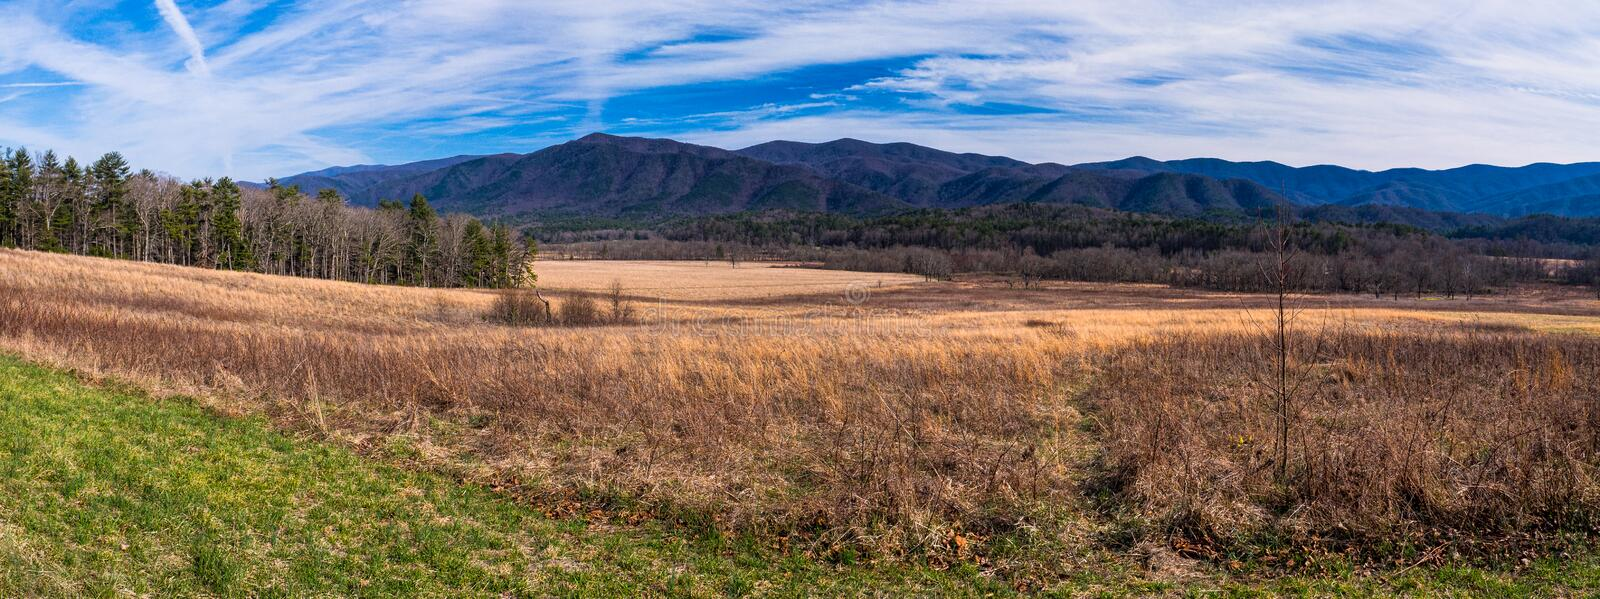 Cades Cove Mountains. A view of the Smoky Mountains seen from Cades Cove in Tennessee stock photos